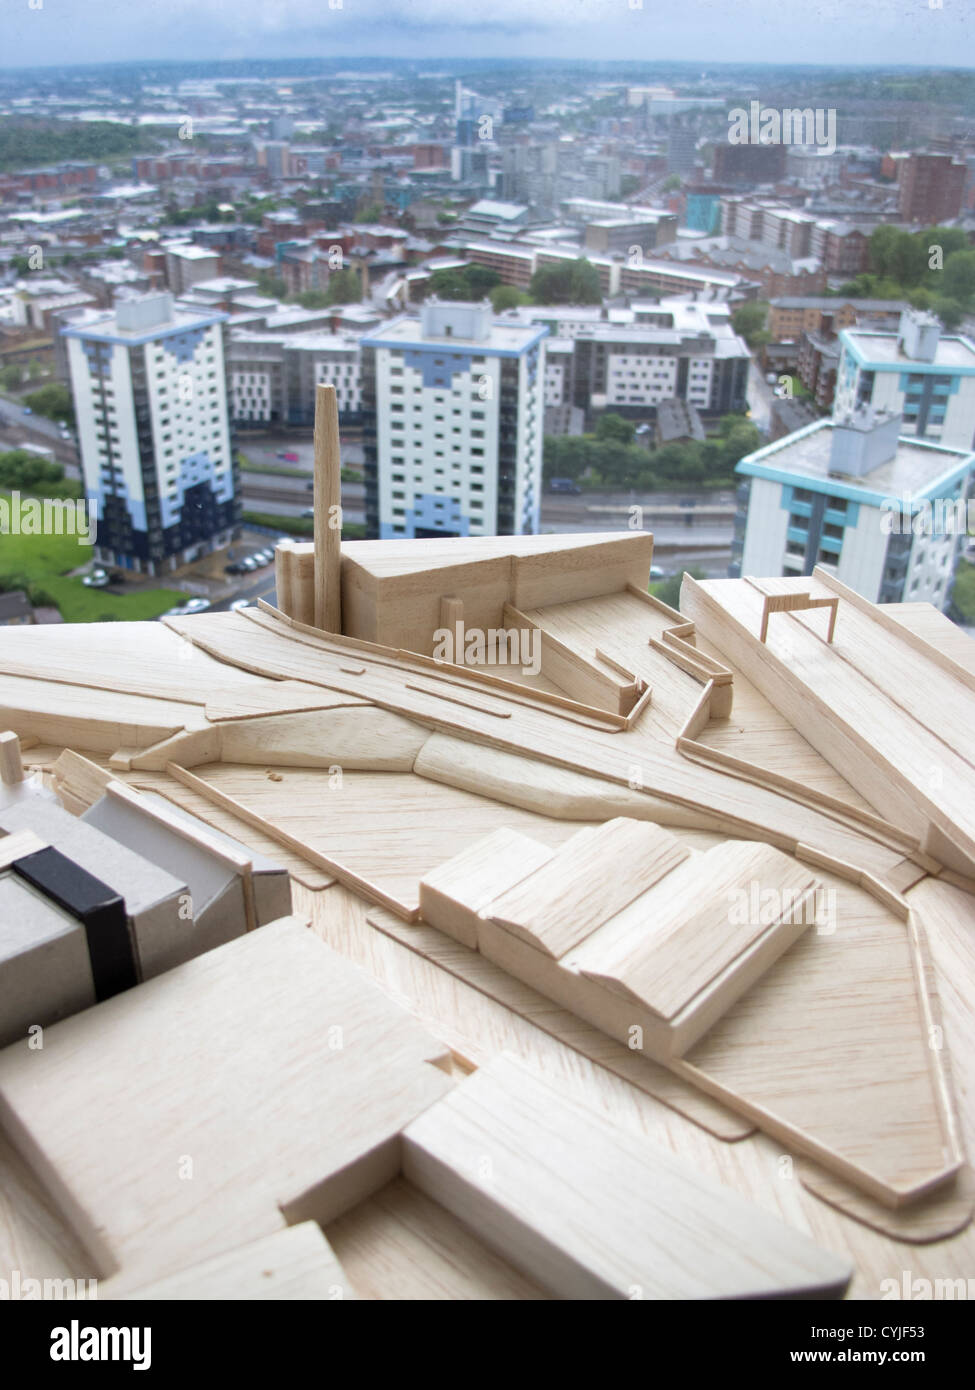 Architecture models in foreground with Sheffield city in background South Yorkshire England - Stock Image